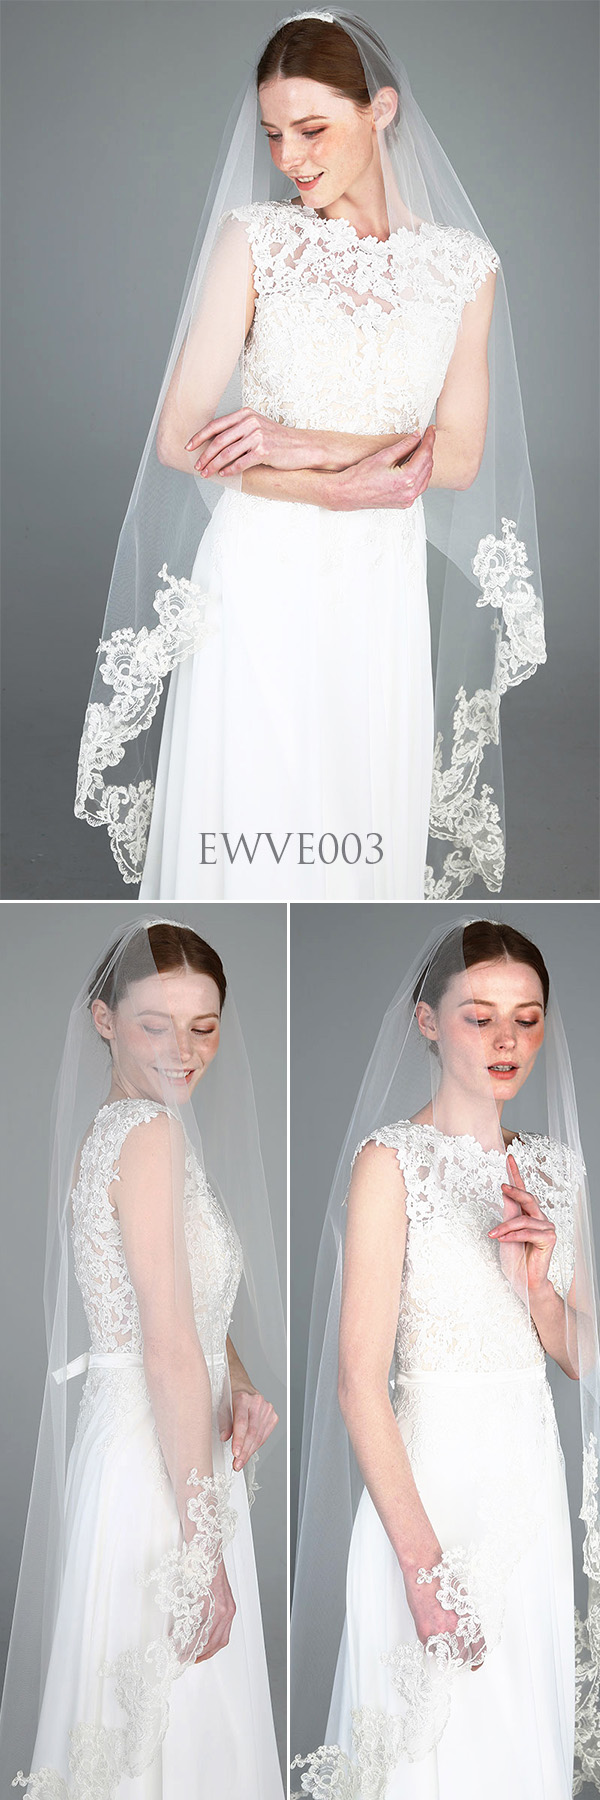 Lace Bottom Single TierFingertip Wedding Veil